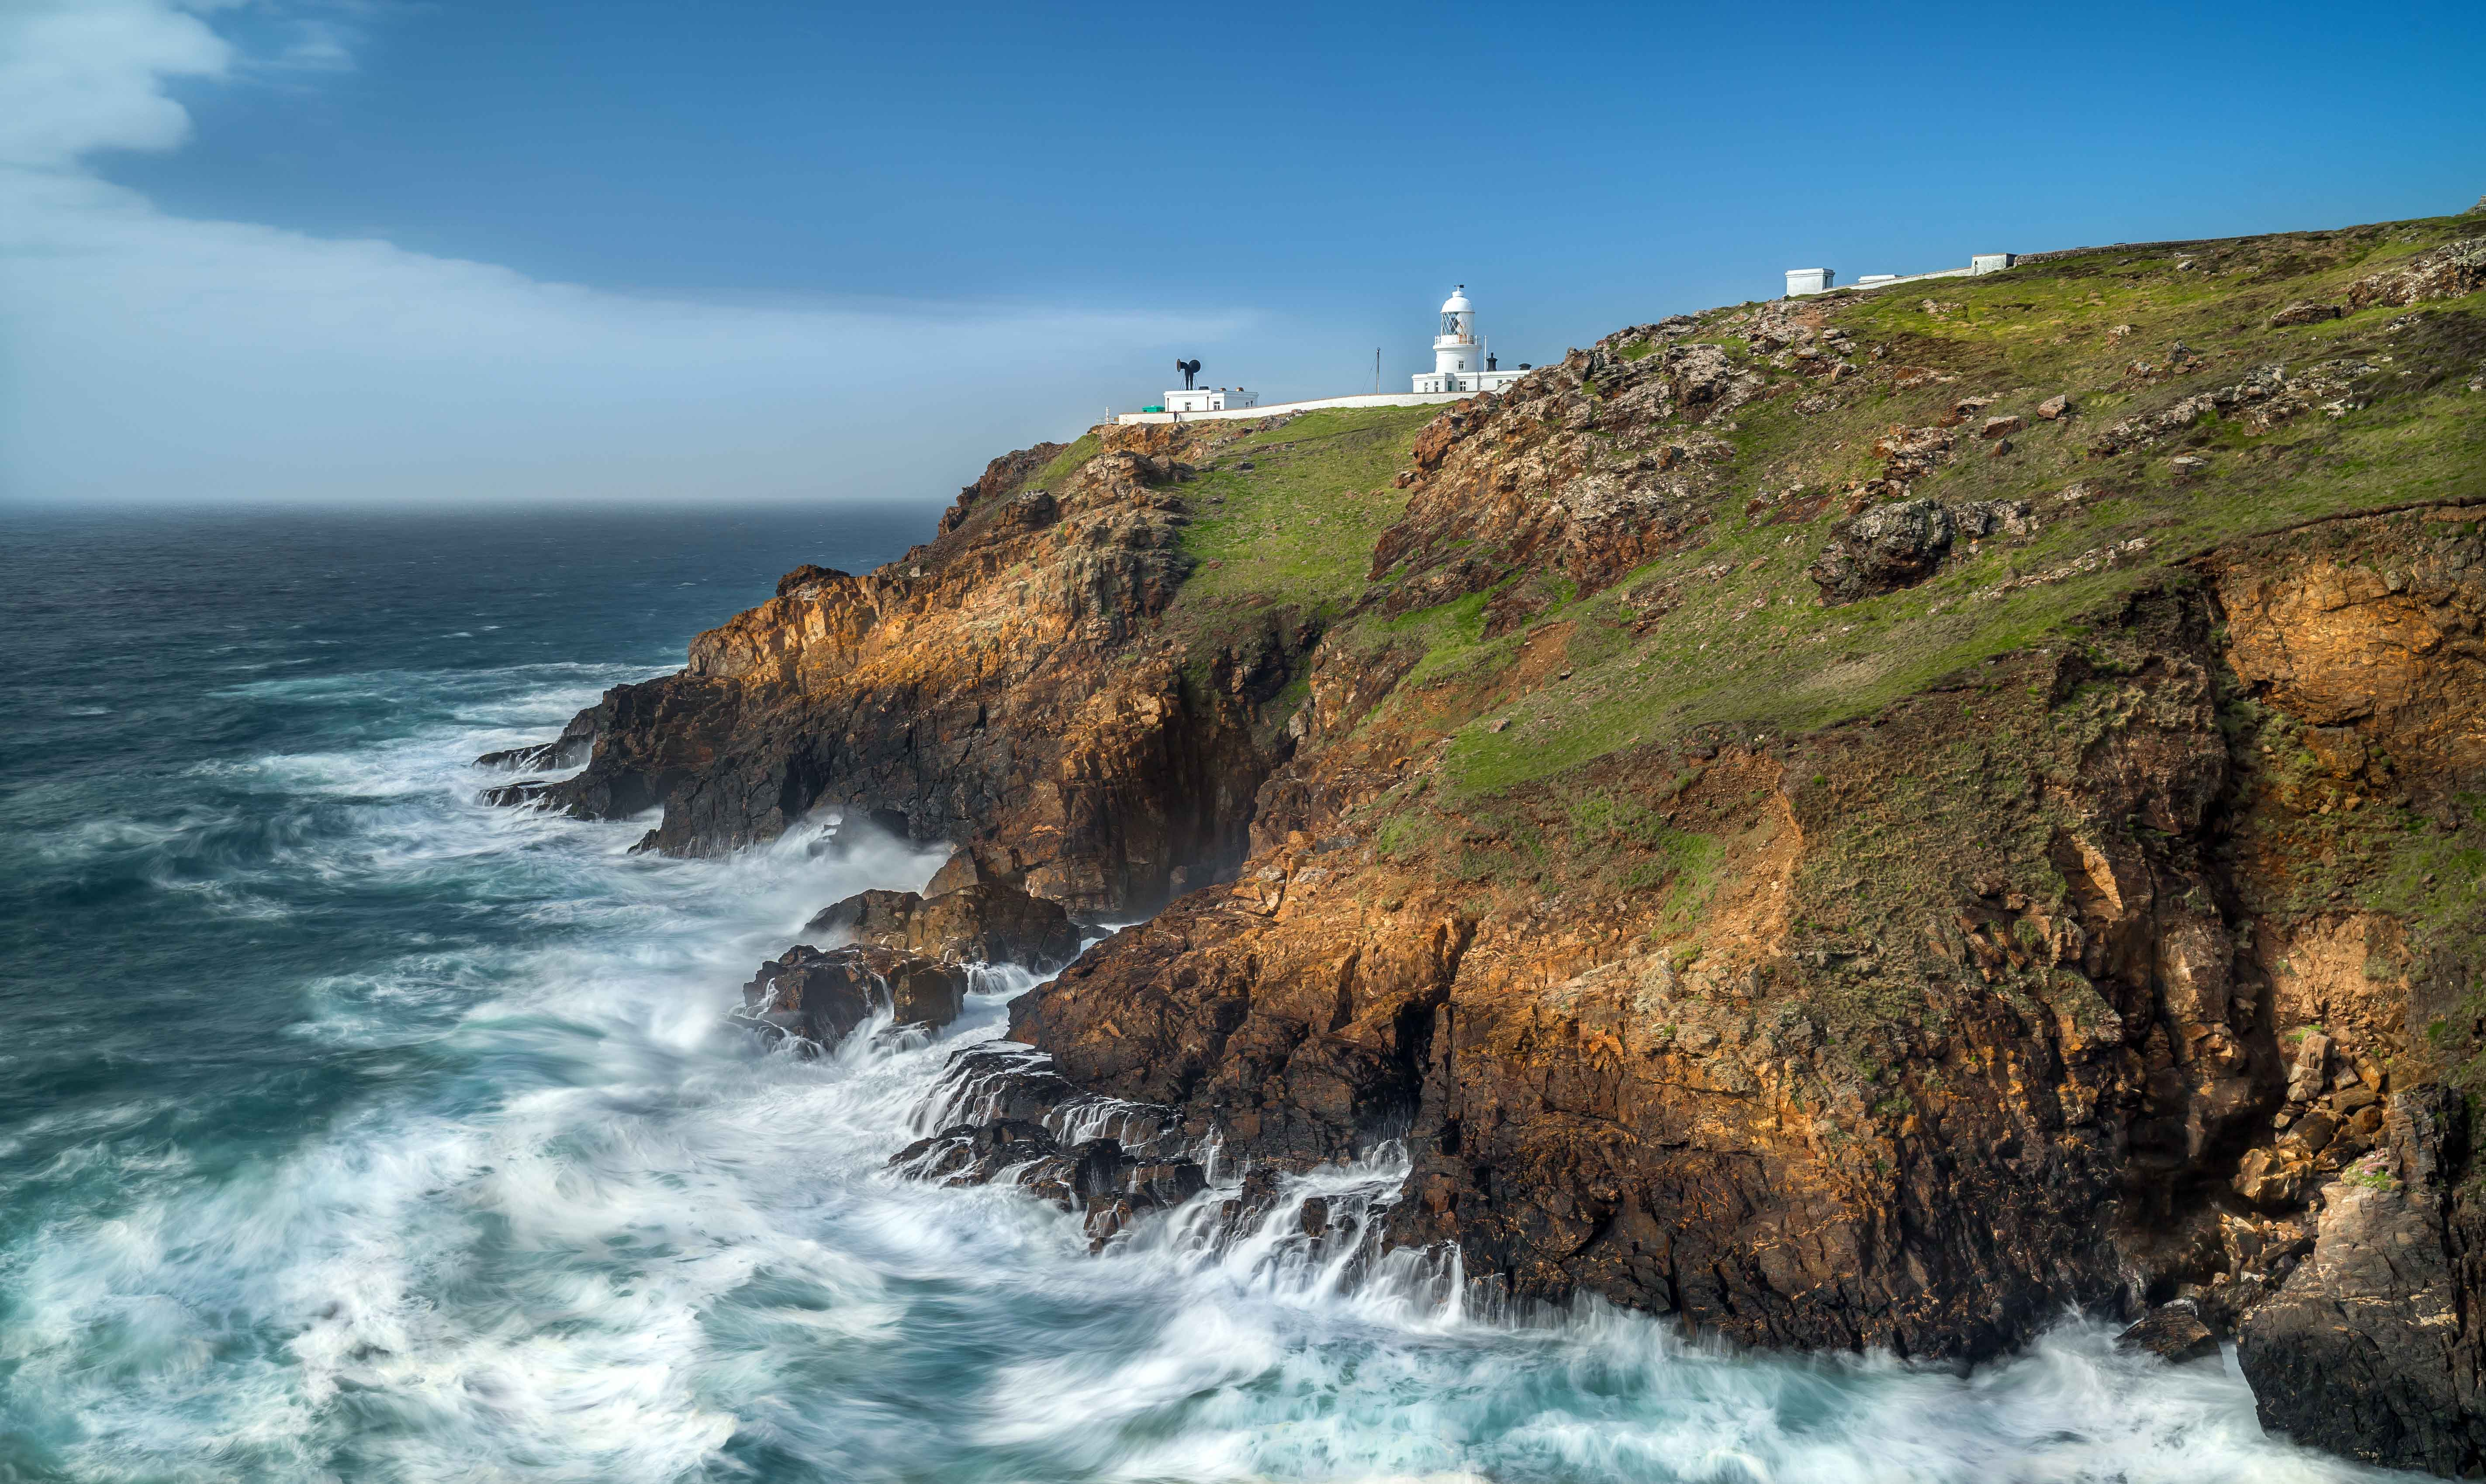 Canva---Dramatic-cliffs-and-wavess,-Pendeen-Point-lighthouse,-Cornwall